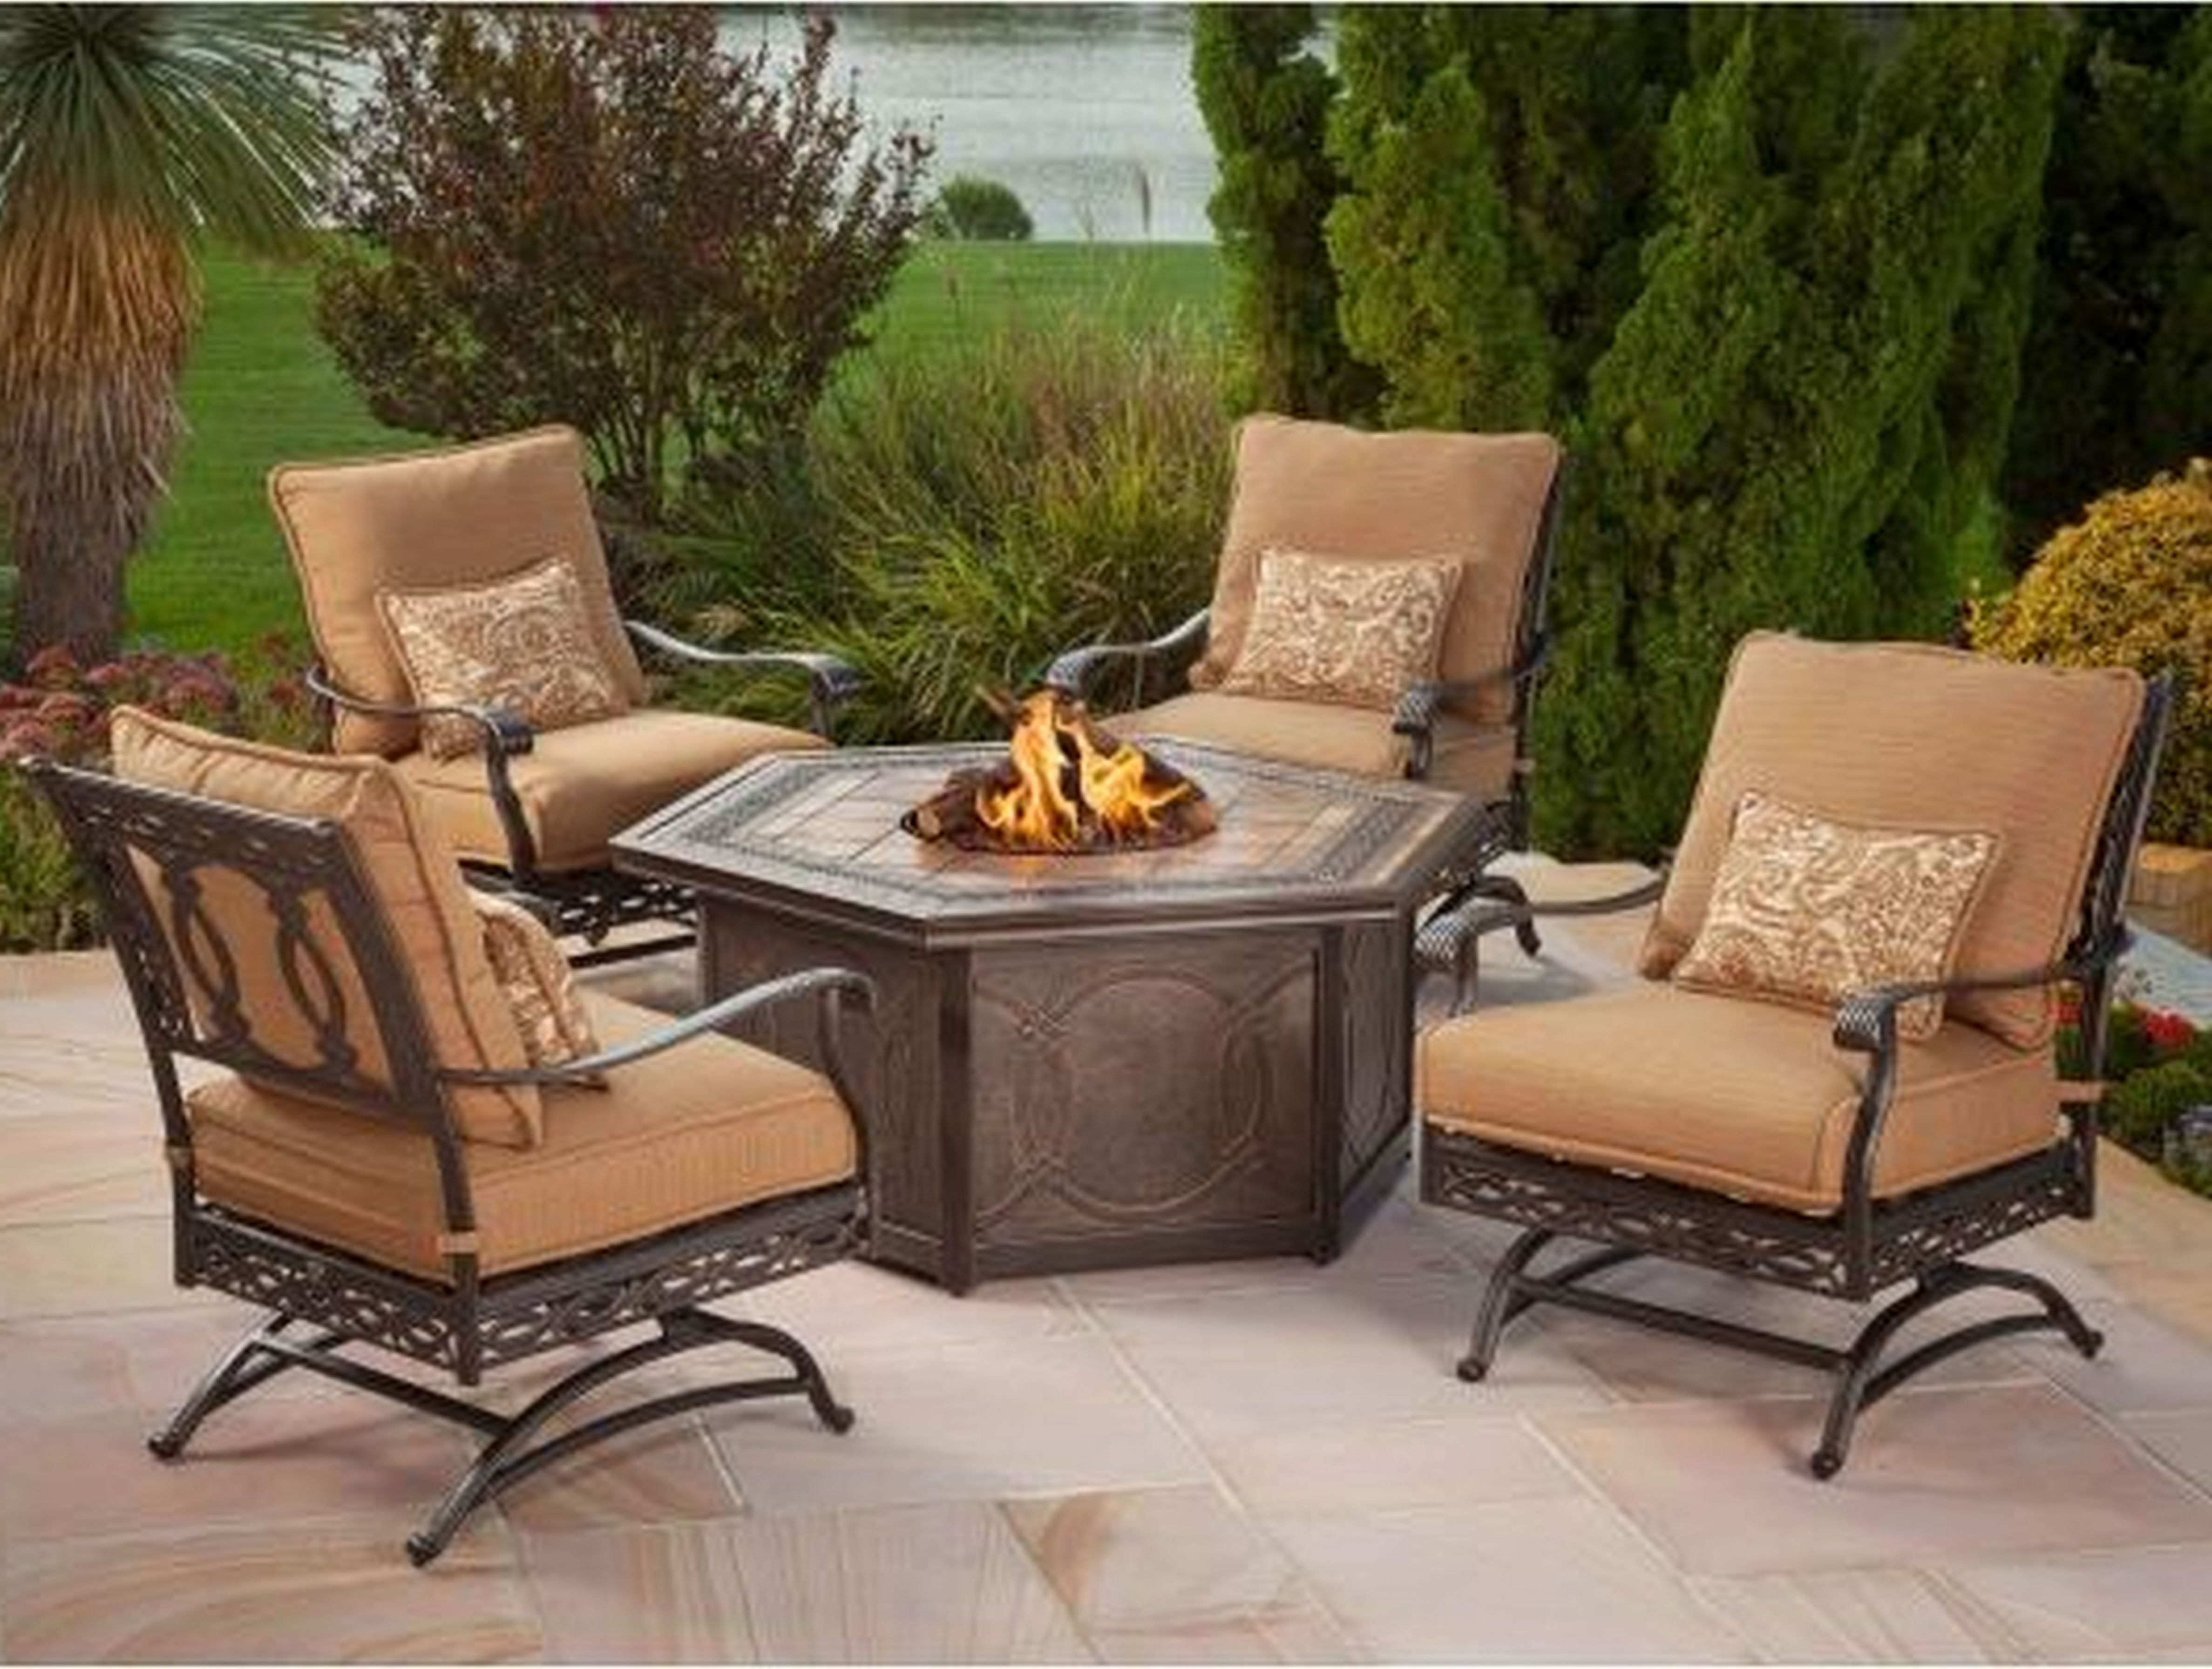 Lowes Patio Furniture Sale Lowes patio furniture, Cheap